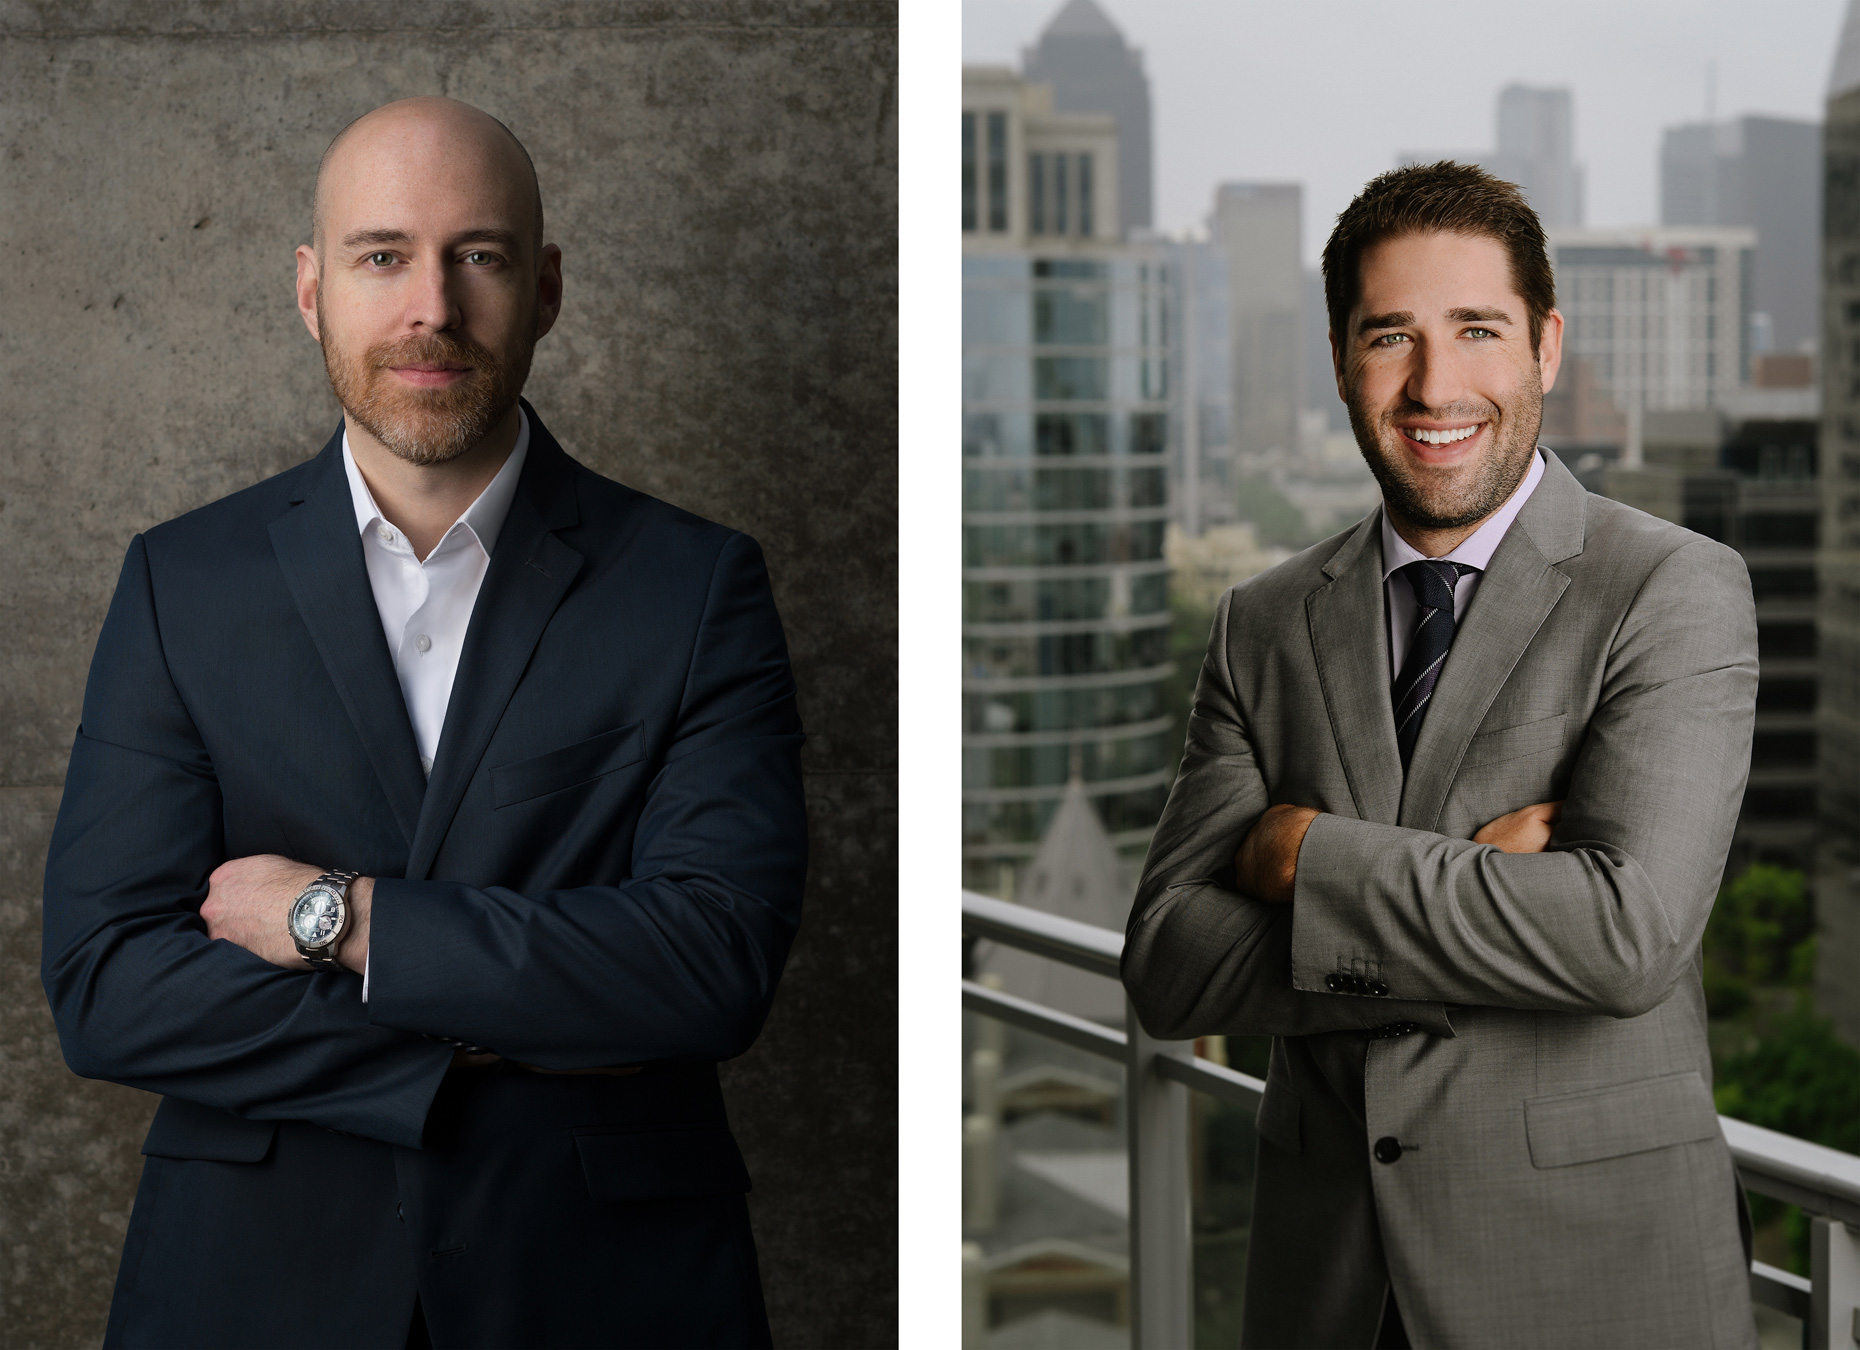 Executive portrait photography for Beck and Mahaska in Dallas by Kevin Brown.